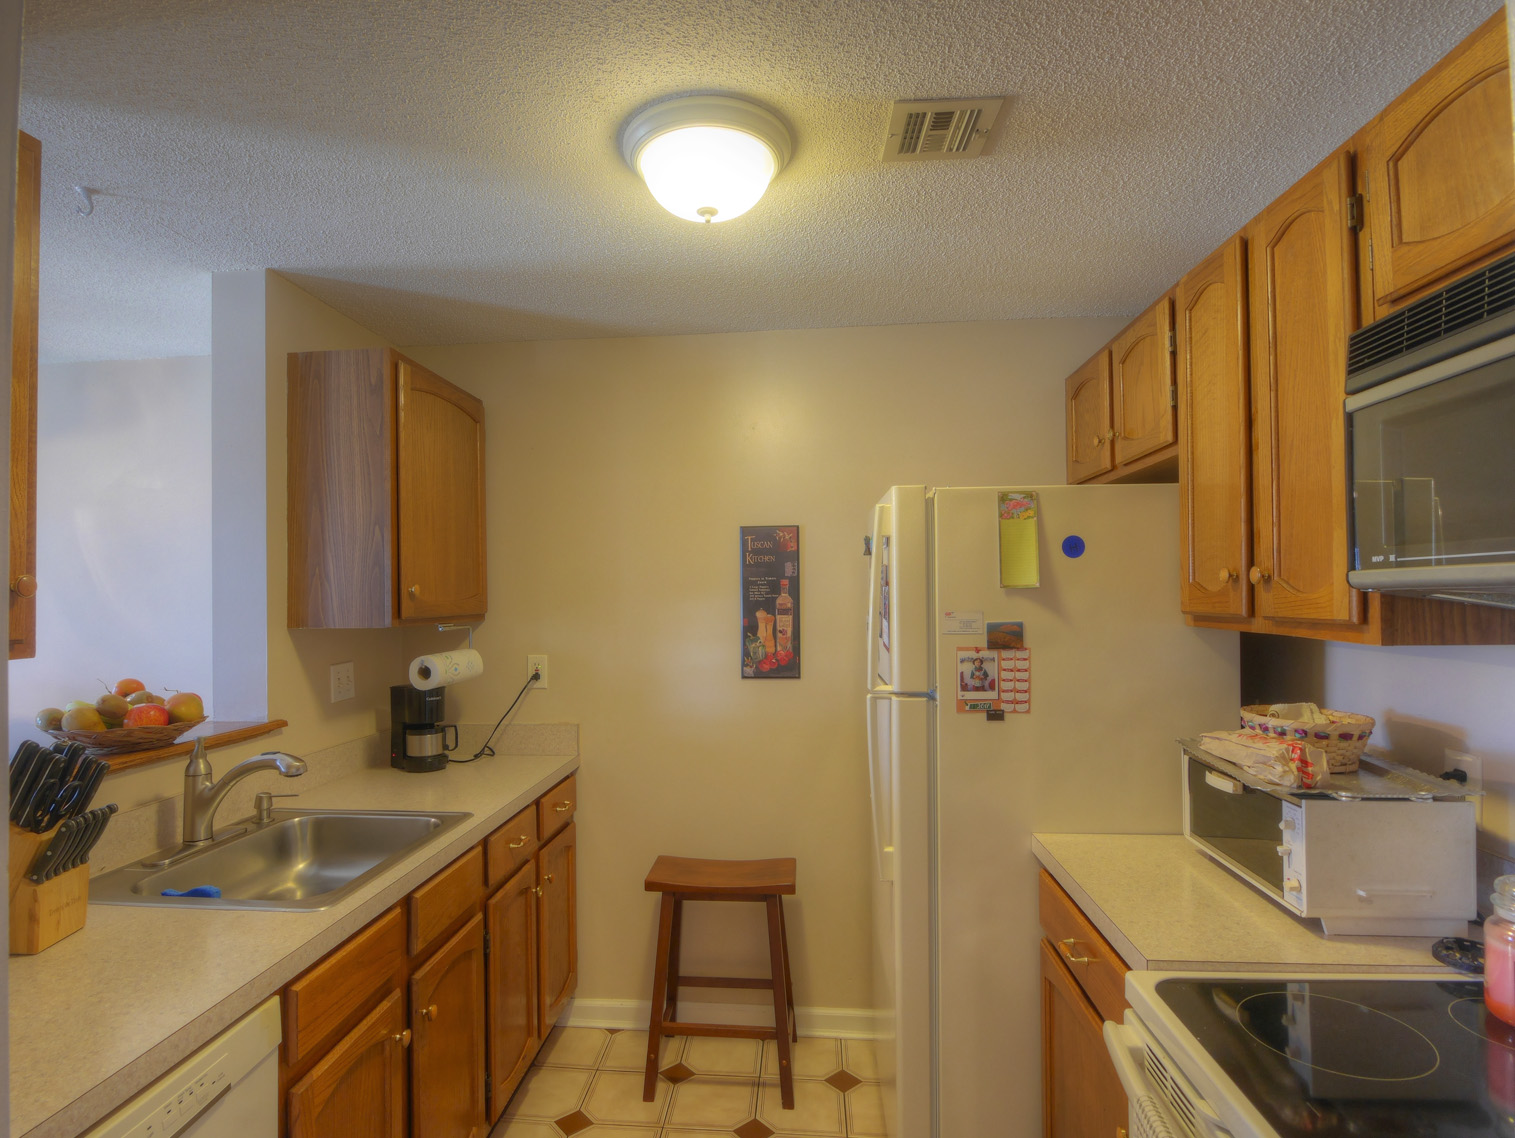 Bright And Sunny 4th Floor Unit Has Nice View 2 Bedrooms Full Bath Are In Excellent Condition Combo Living Dining Room Galley Kitchen With Newer